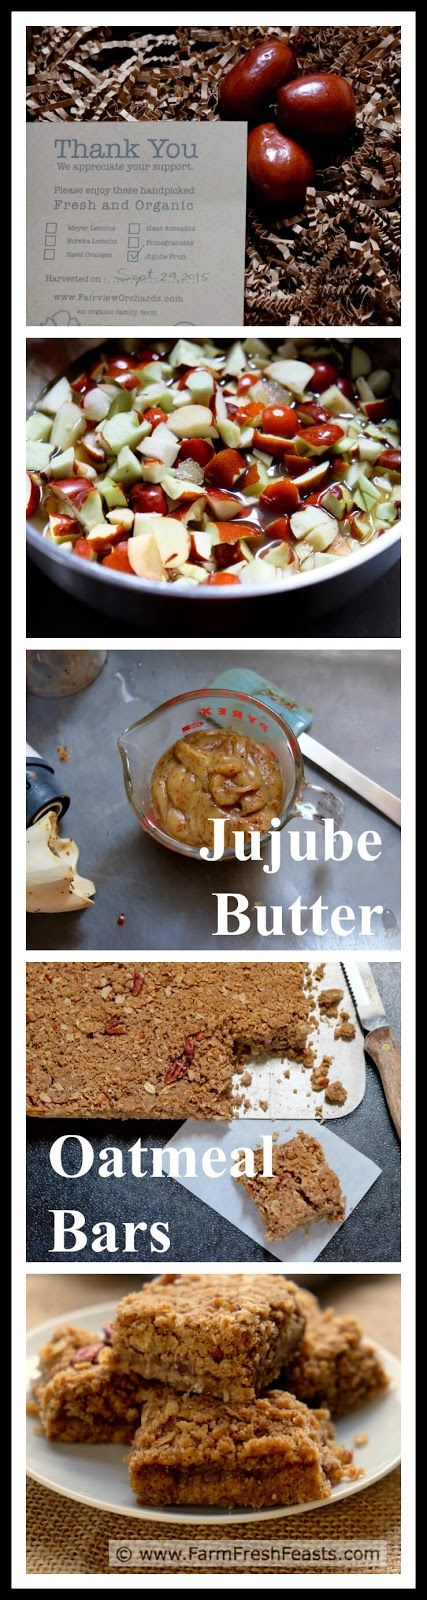 Jujube Butter Oatmeal Bars--jujube fruit simmered with apple cider into a fruit butter, sandwiched between layers of oatmeal pecan cookie bars.